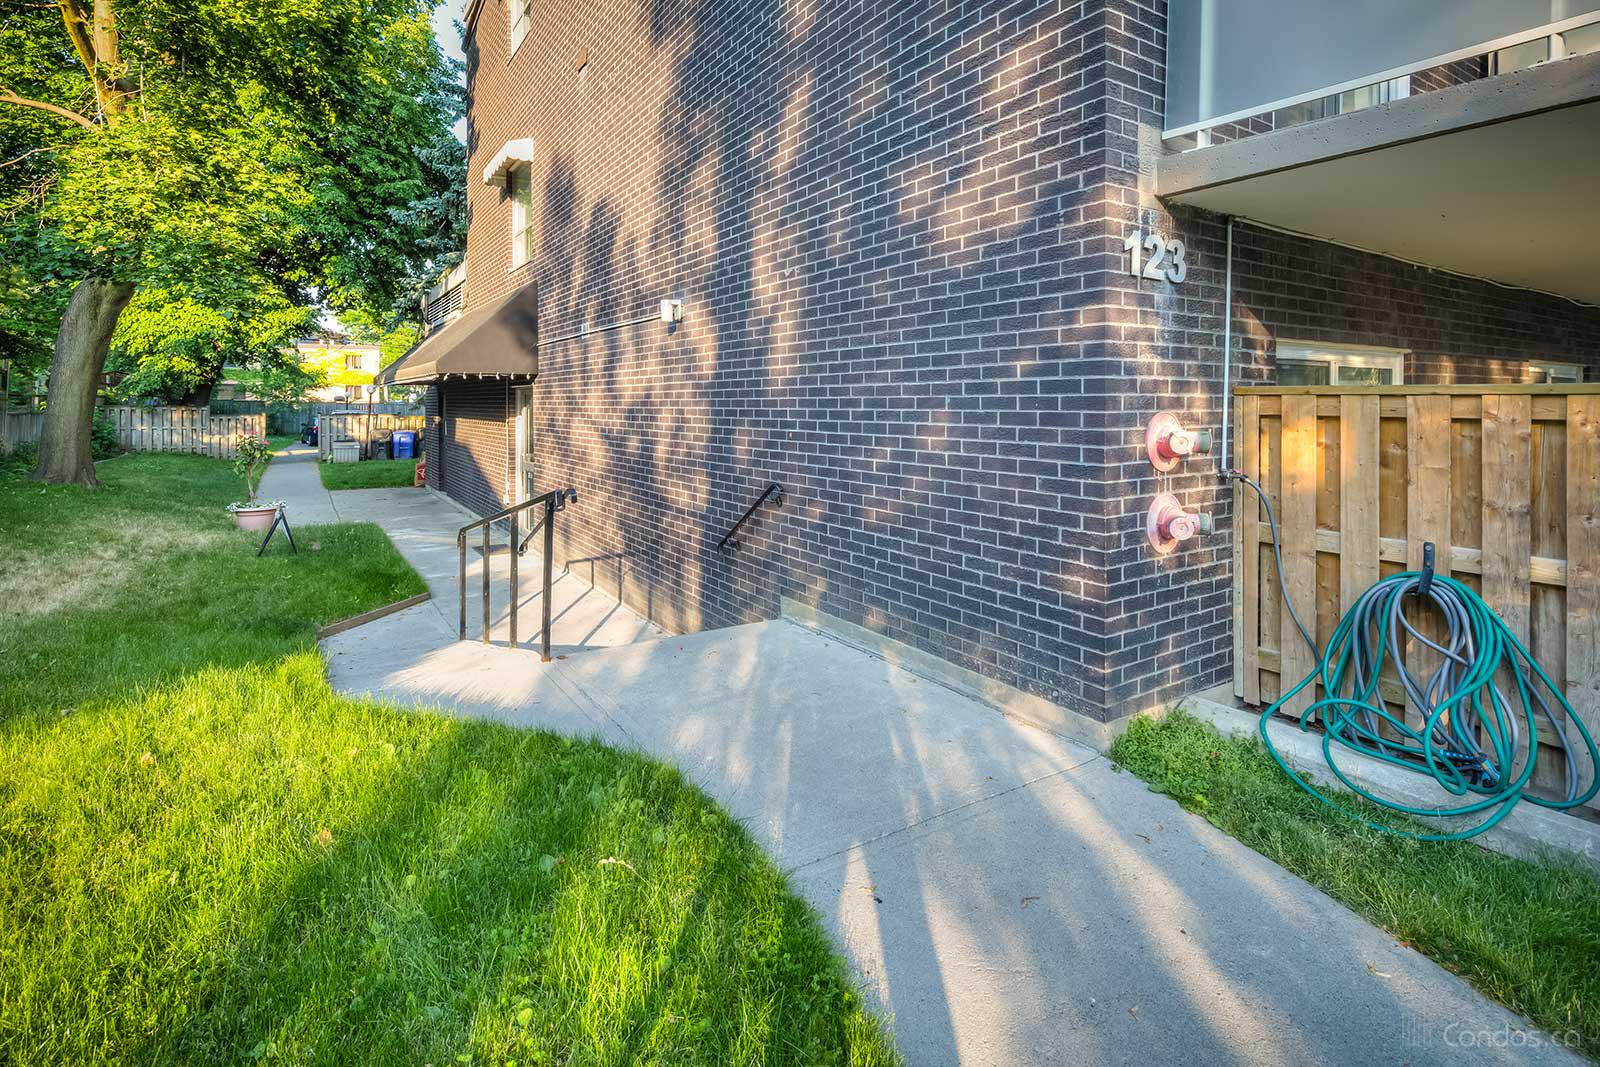 123 Woodbine Avenue Condos at 123 Woodbine Ave, Toronto 1